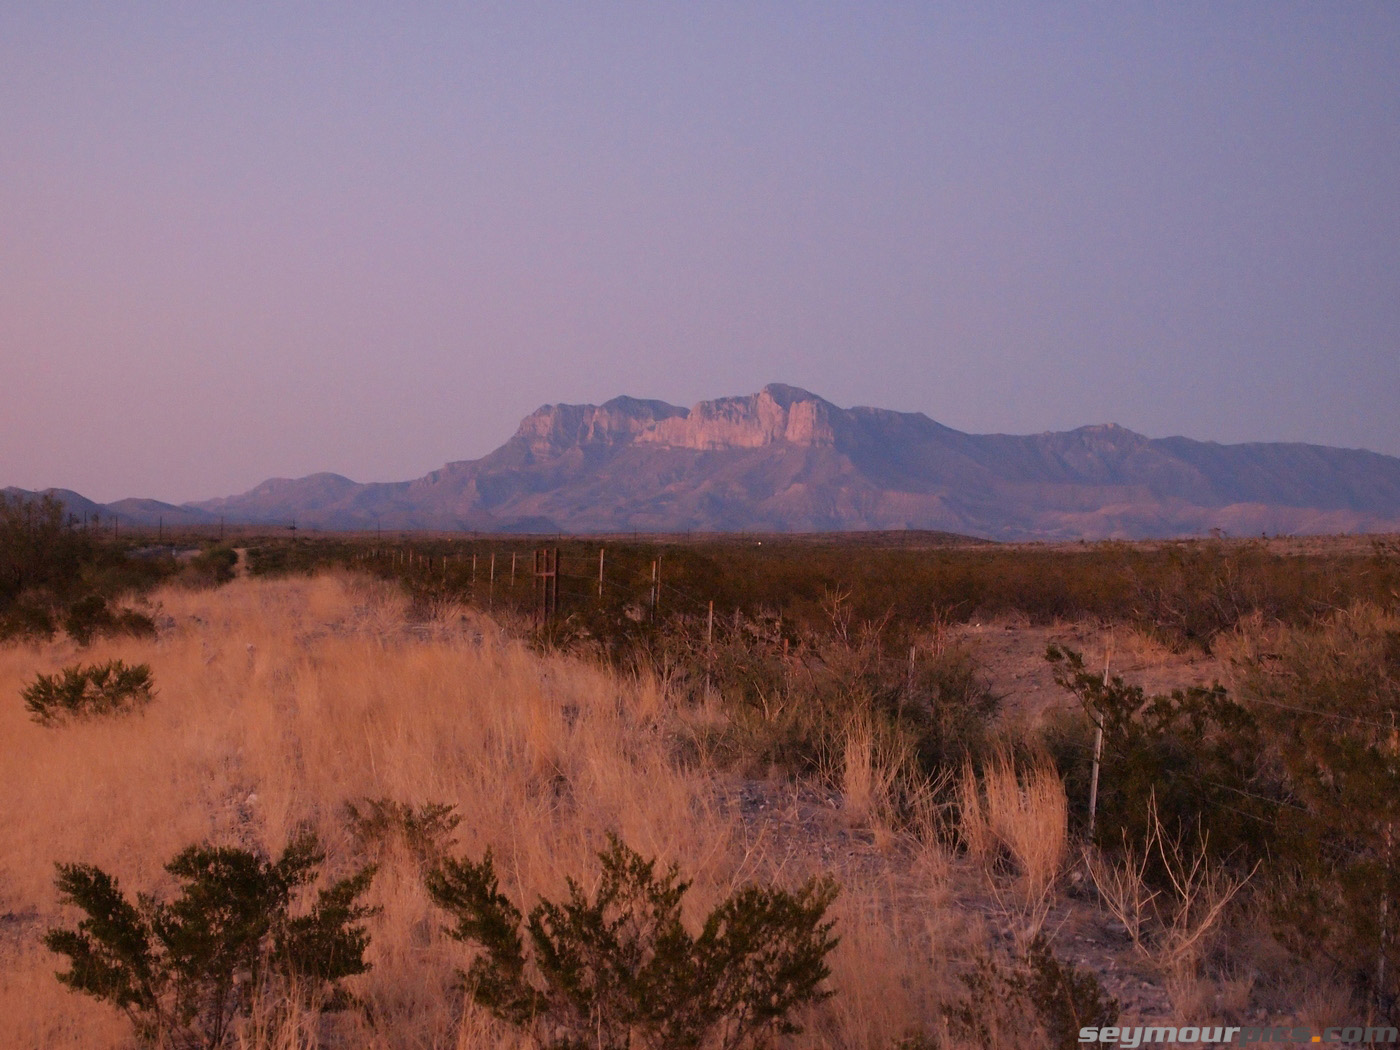 seymourpics-wallpaper-guadalupe-mountains_1400px.jpg